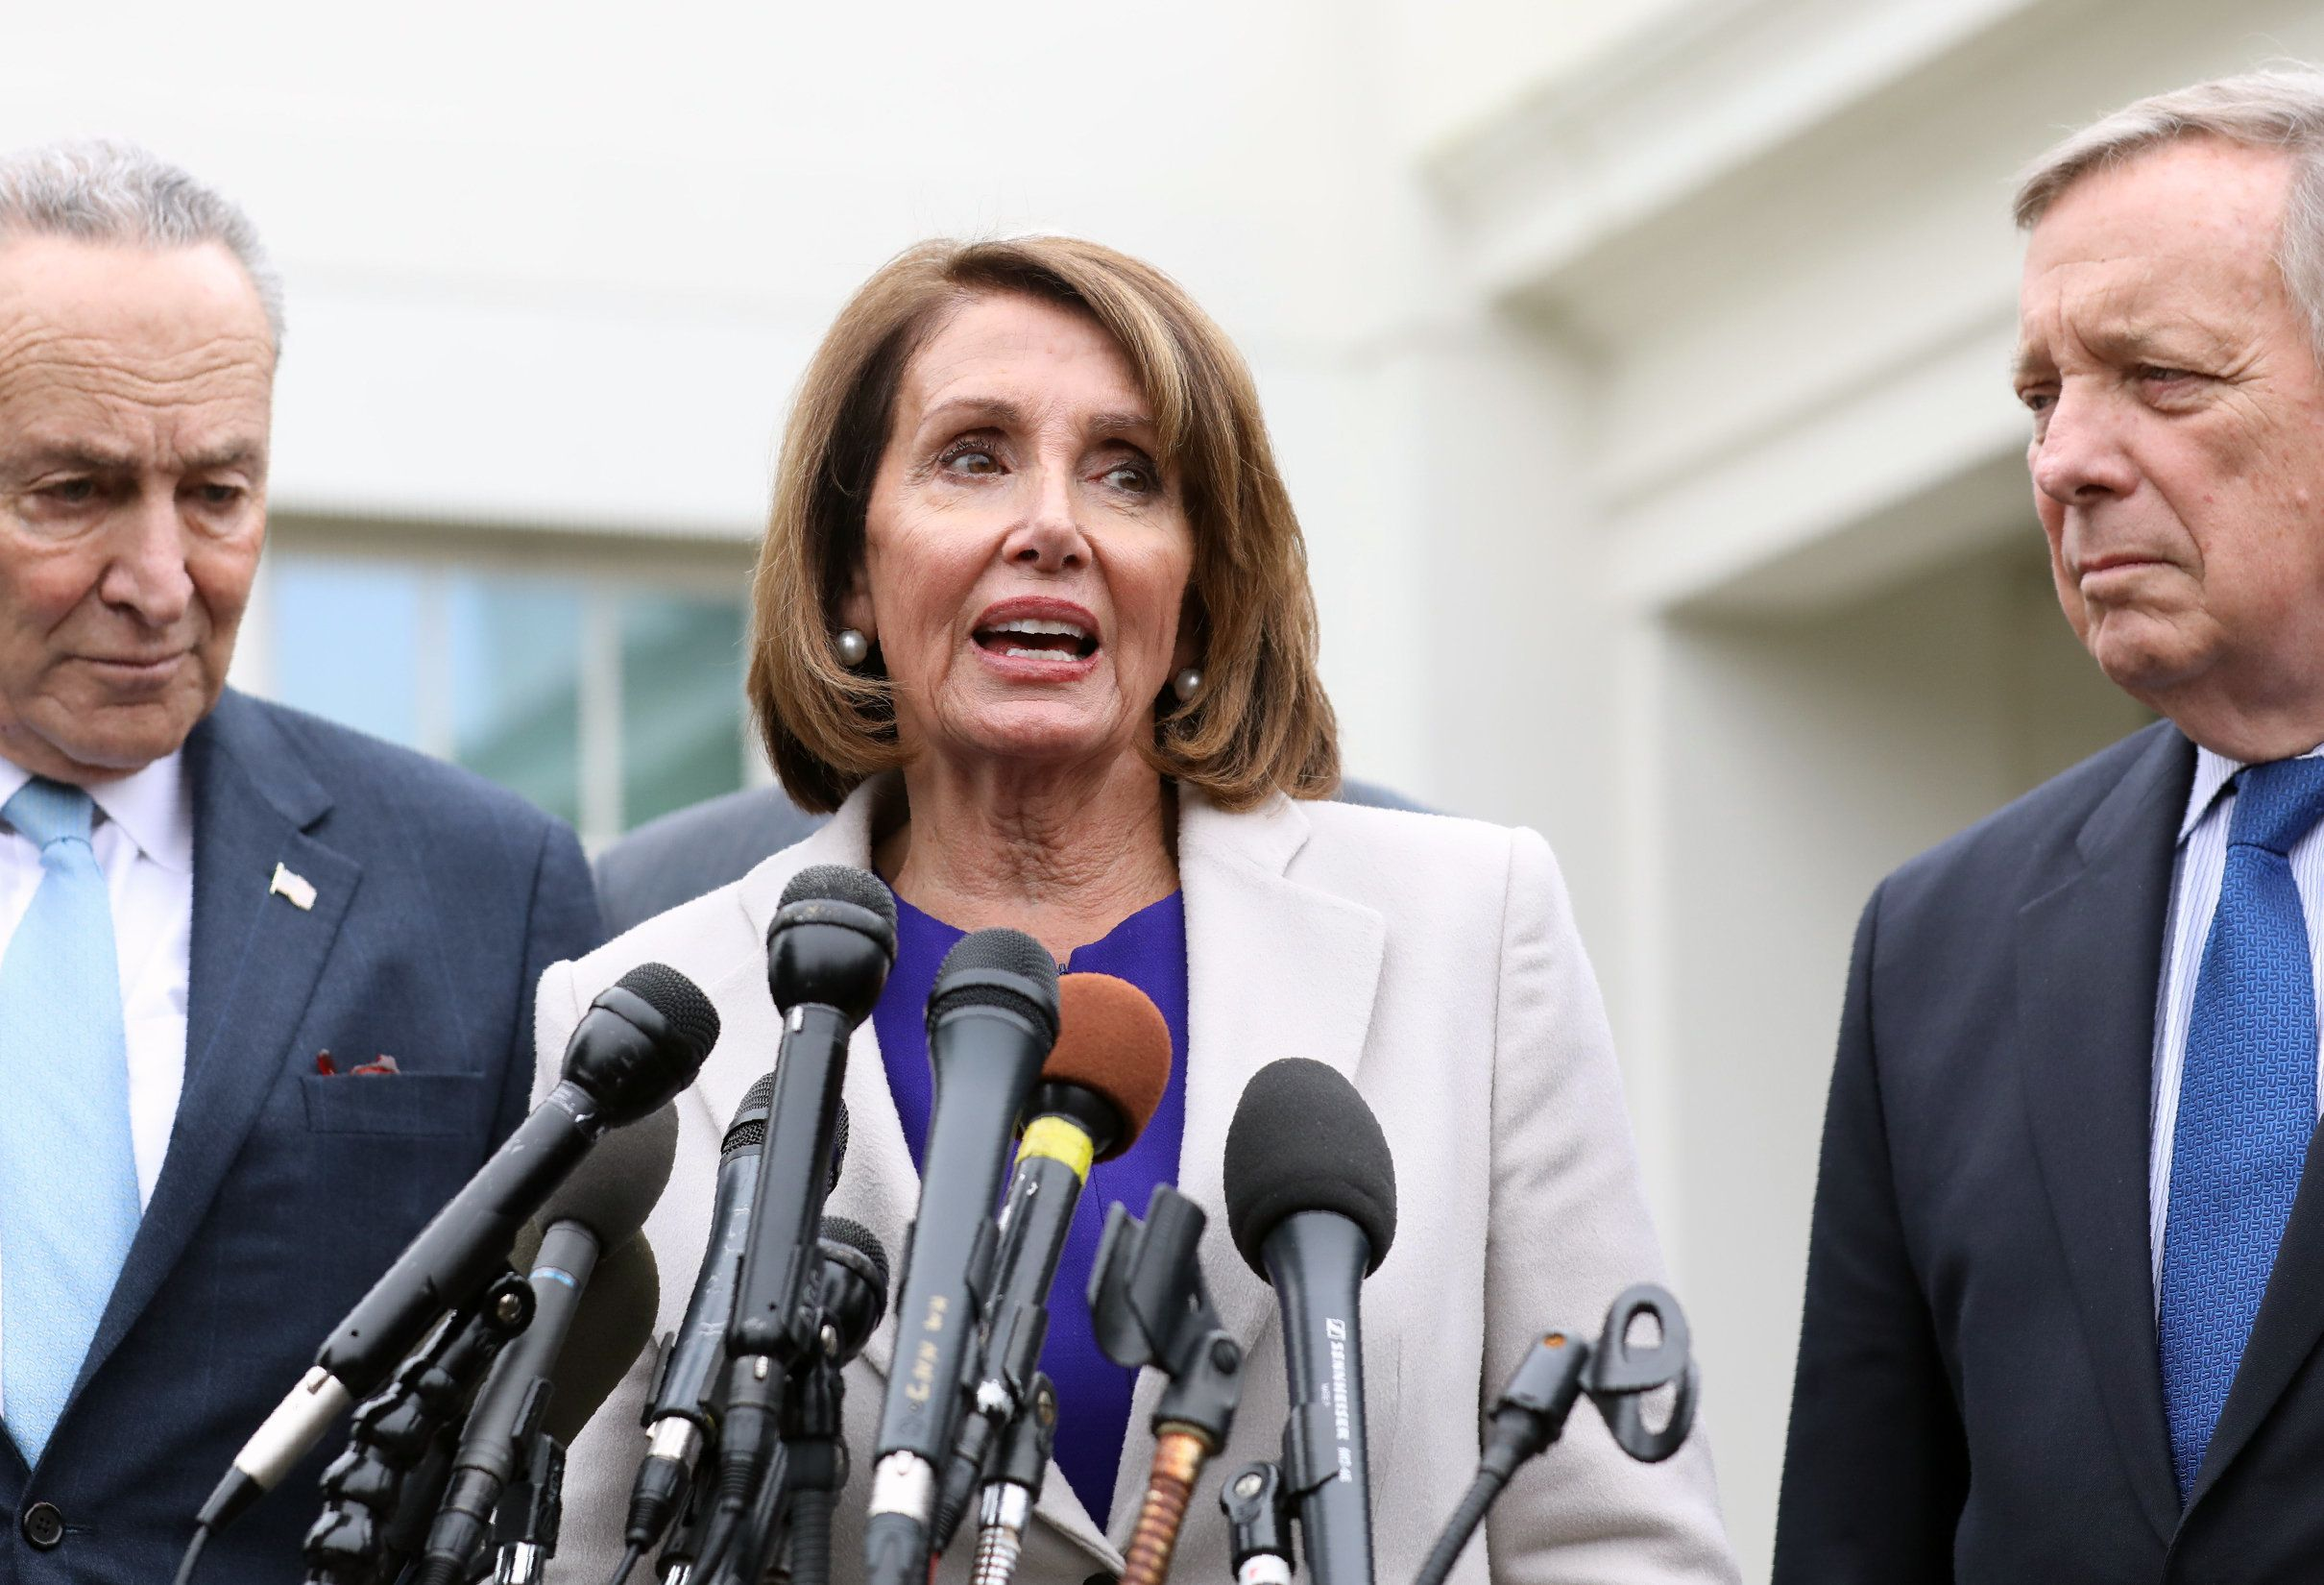 House Speaker Nancy Pelosi (C), D-CA, Senate Minority Leader Chuck Schumer (L), D-NY, and Senator Dick Durbin (R), D-IL, speak to the media outside the White House after meeting with US President Donald Trump to discuss the partial government shutdown, January 4, 2019 in Washigton, DC. (Photo by Alex Edelman / AFP)        (Photo credit should read ALEX EDELMAN/AFP/Getty Images)